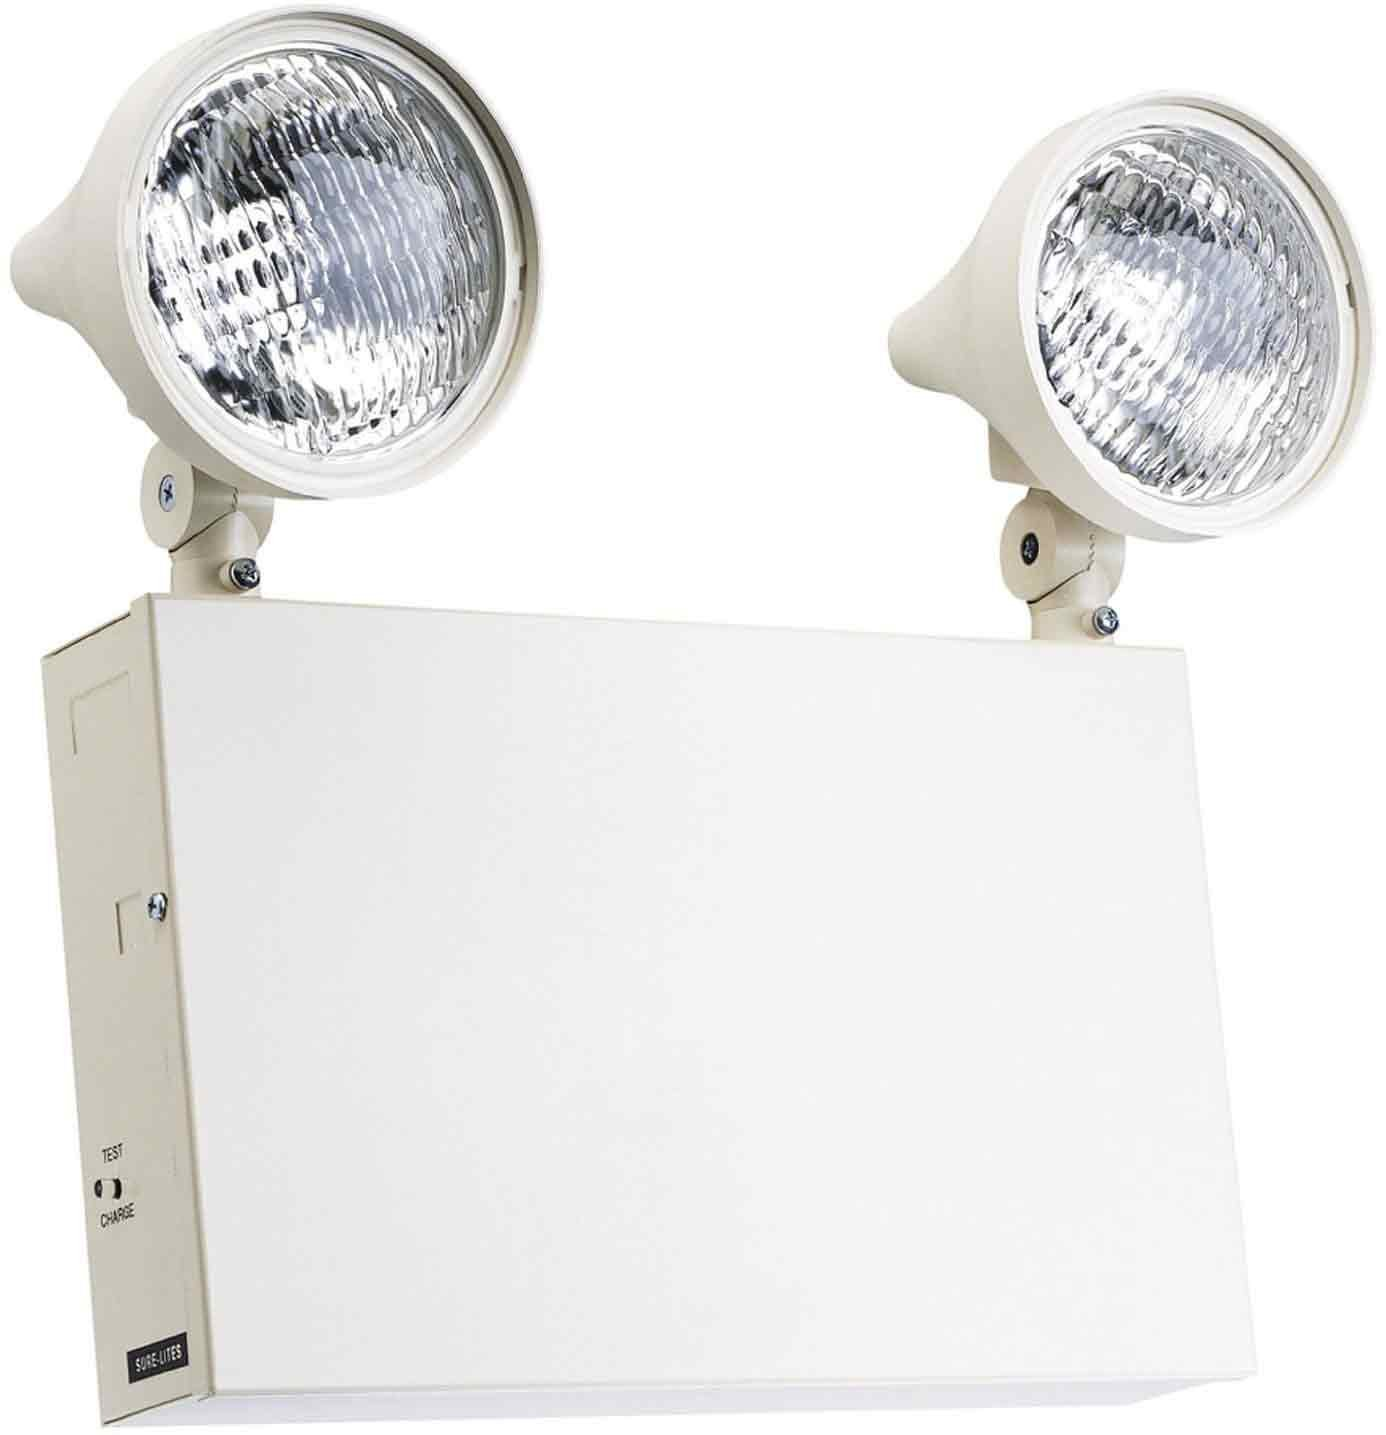 Sure lites xr12206 12 volt commercial steel emergency light with 9 sure lites xr12206 12 volt commercial steel emergency light with 9 watt incandescent lamps and 18 watt remote capacity white incandescent bulbs amazon asfbconference2016 Images